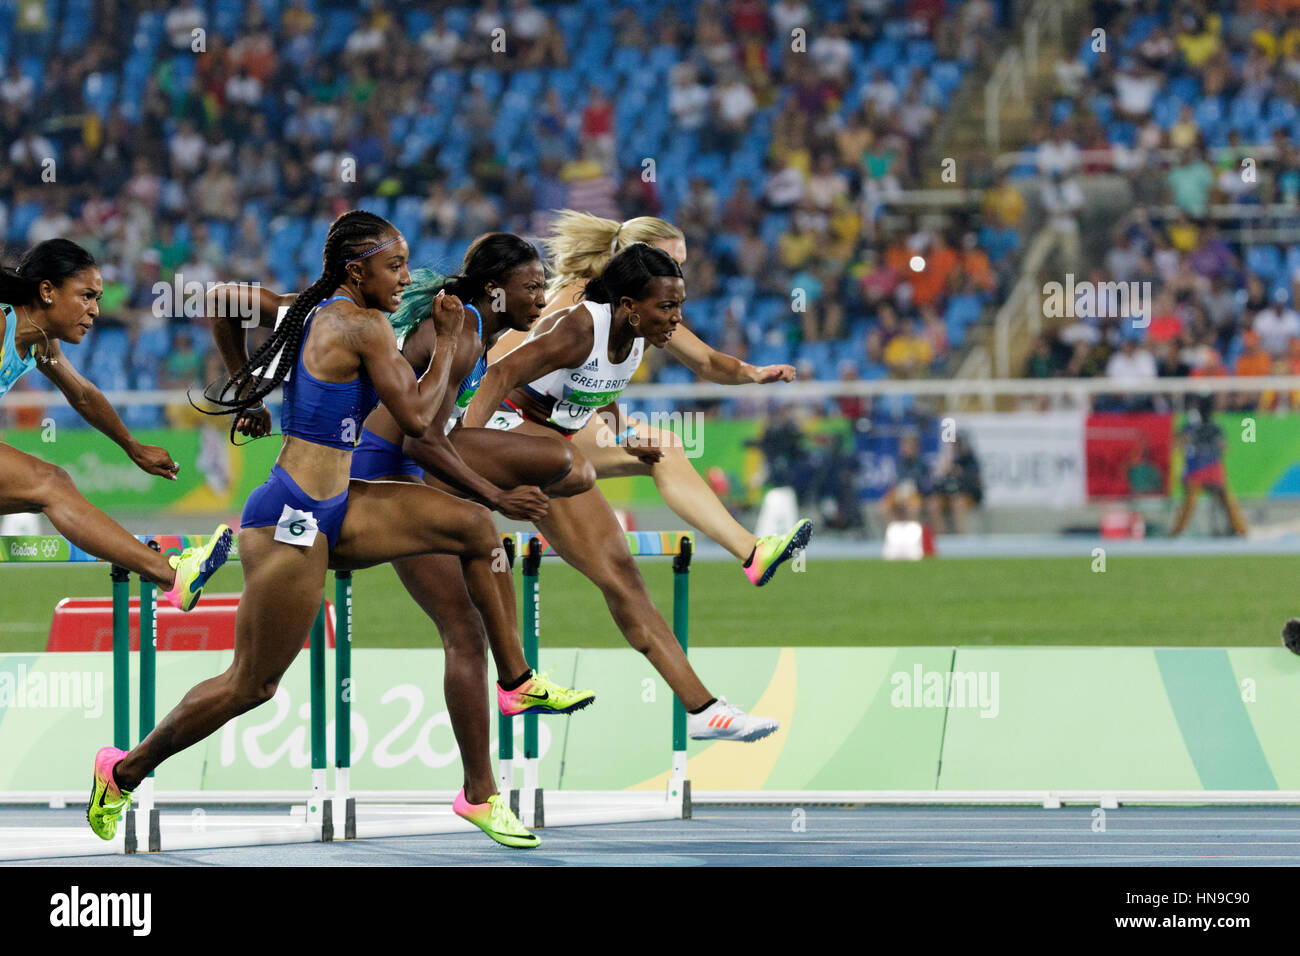 Rio de Janeiro, Brazil. 17 August 2016. Brianna Rollins (USA) #6 wins the gold medal in the Women's 100m Hurdles - Stock Image